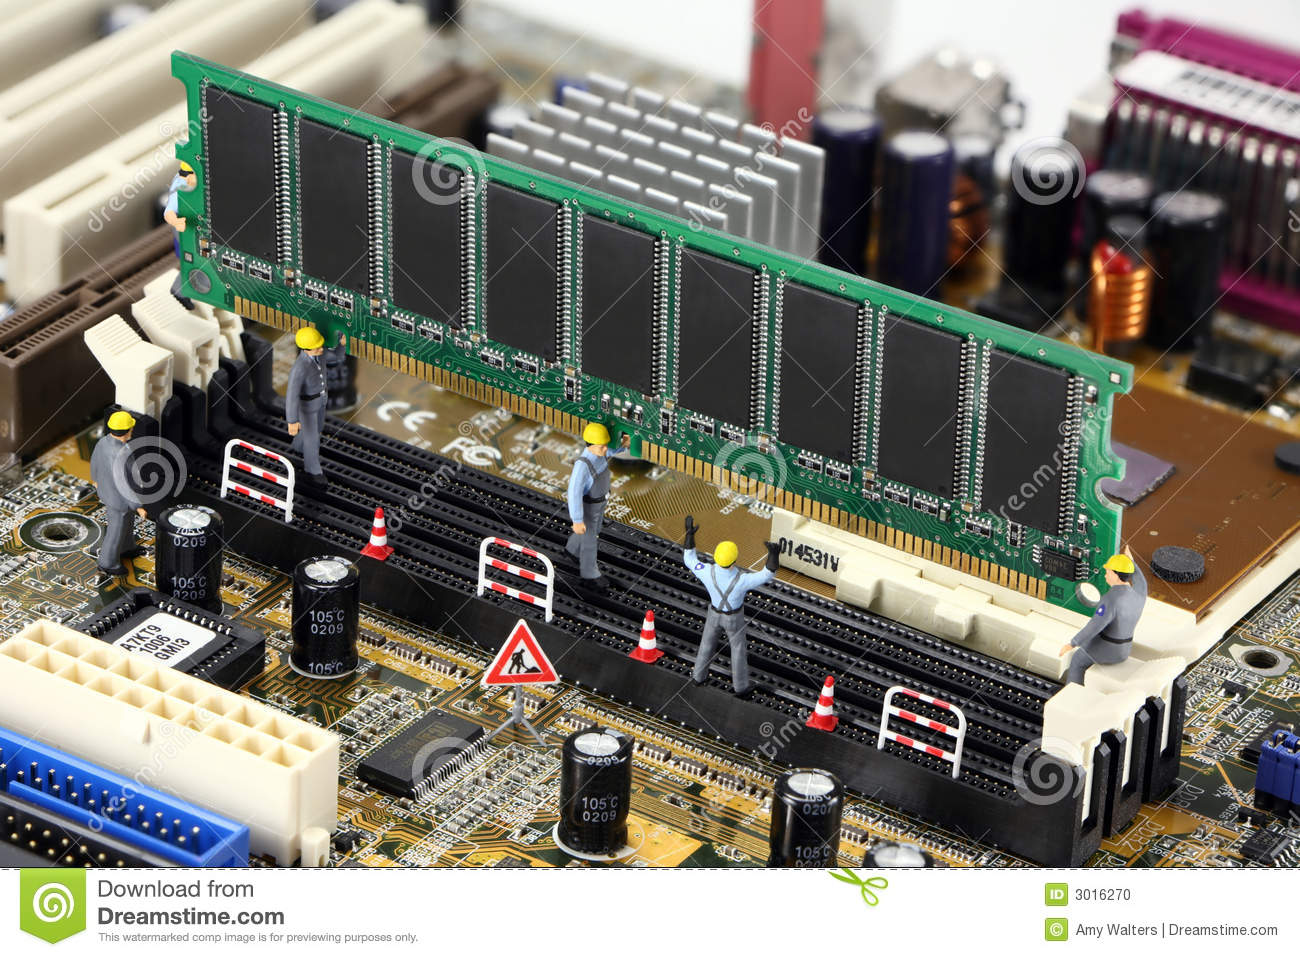 how to clean your pc without compressed aur